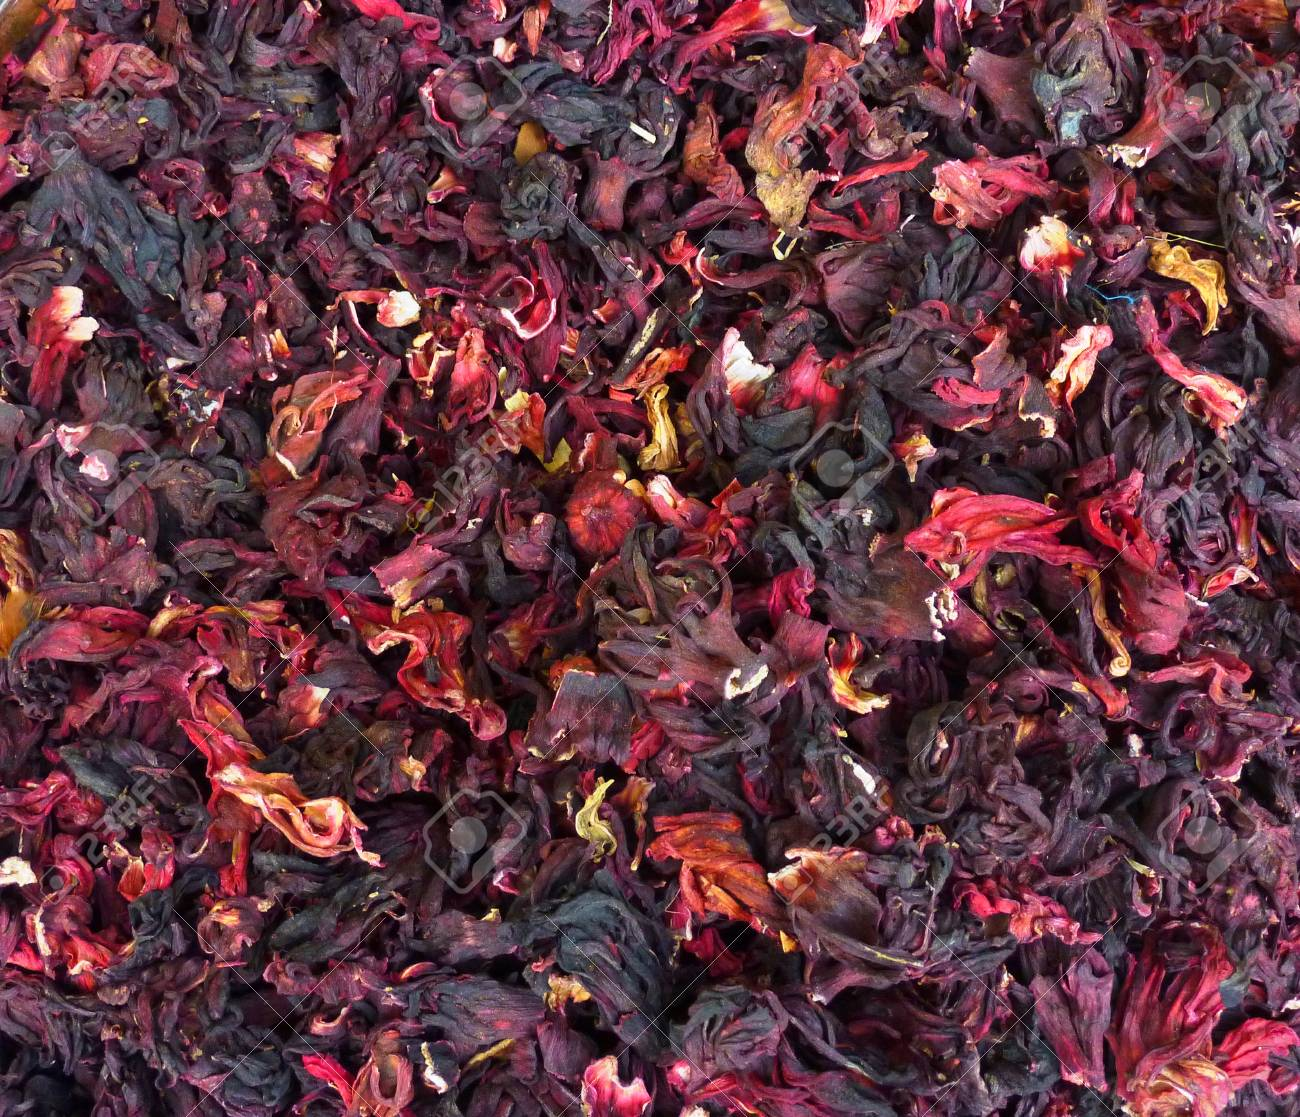 Dried Hibiscus Flowers For Sale At A Market In Mexico Stock Photo